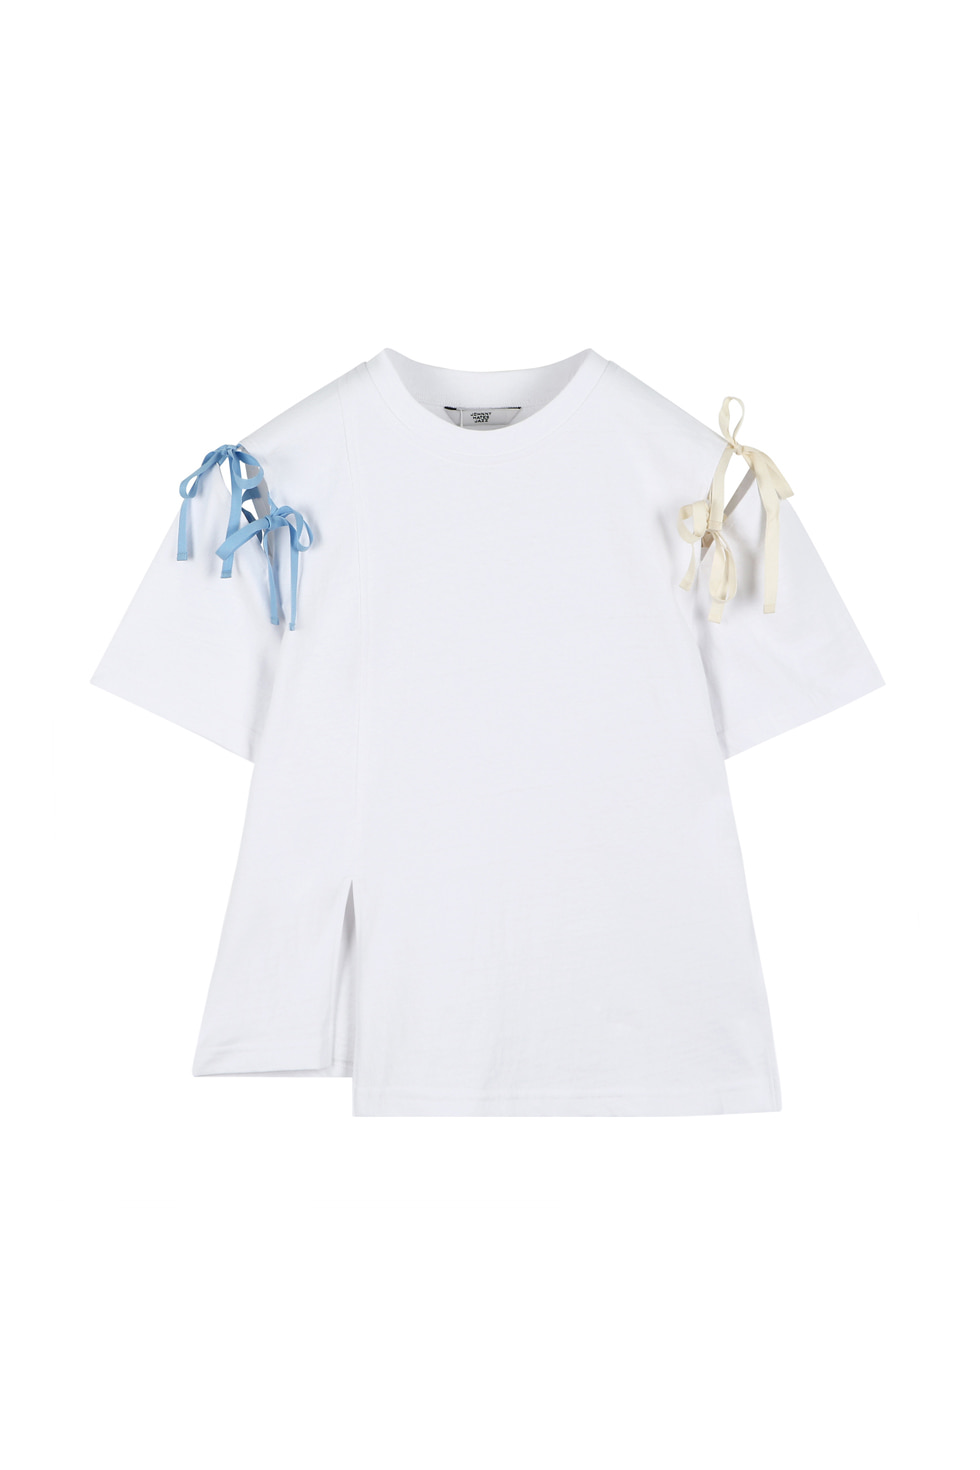 RIBBON TIE T-SHIRTS - WHITE